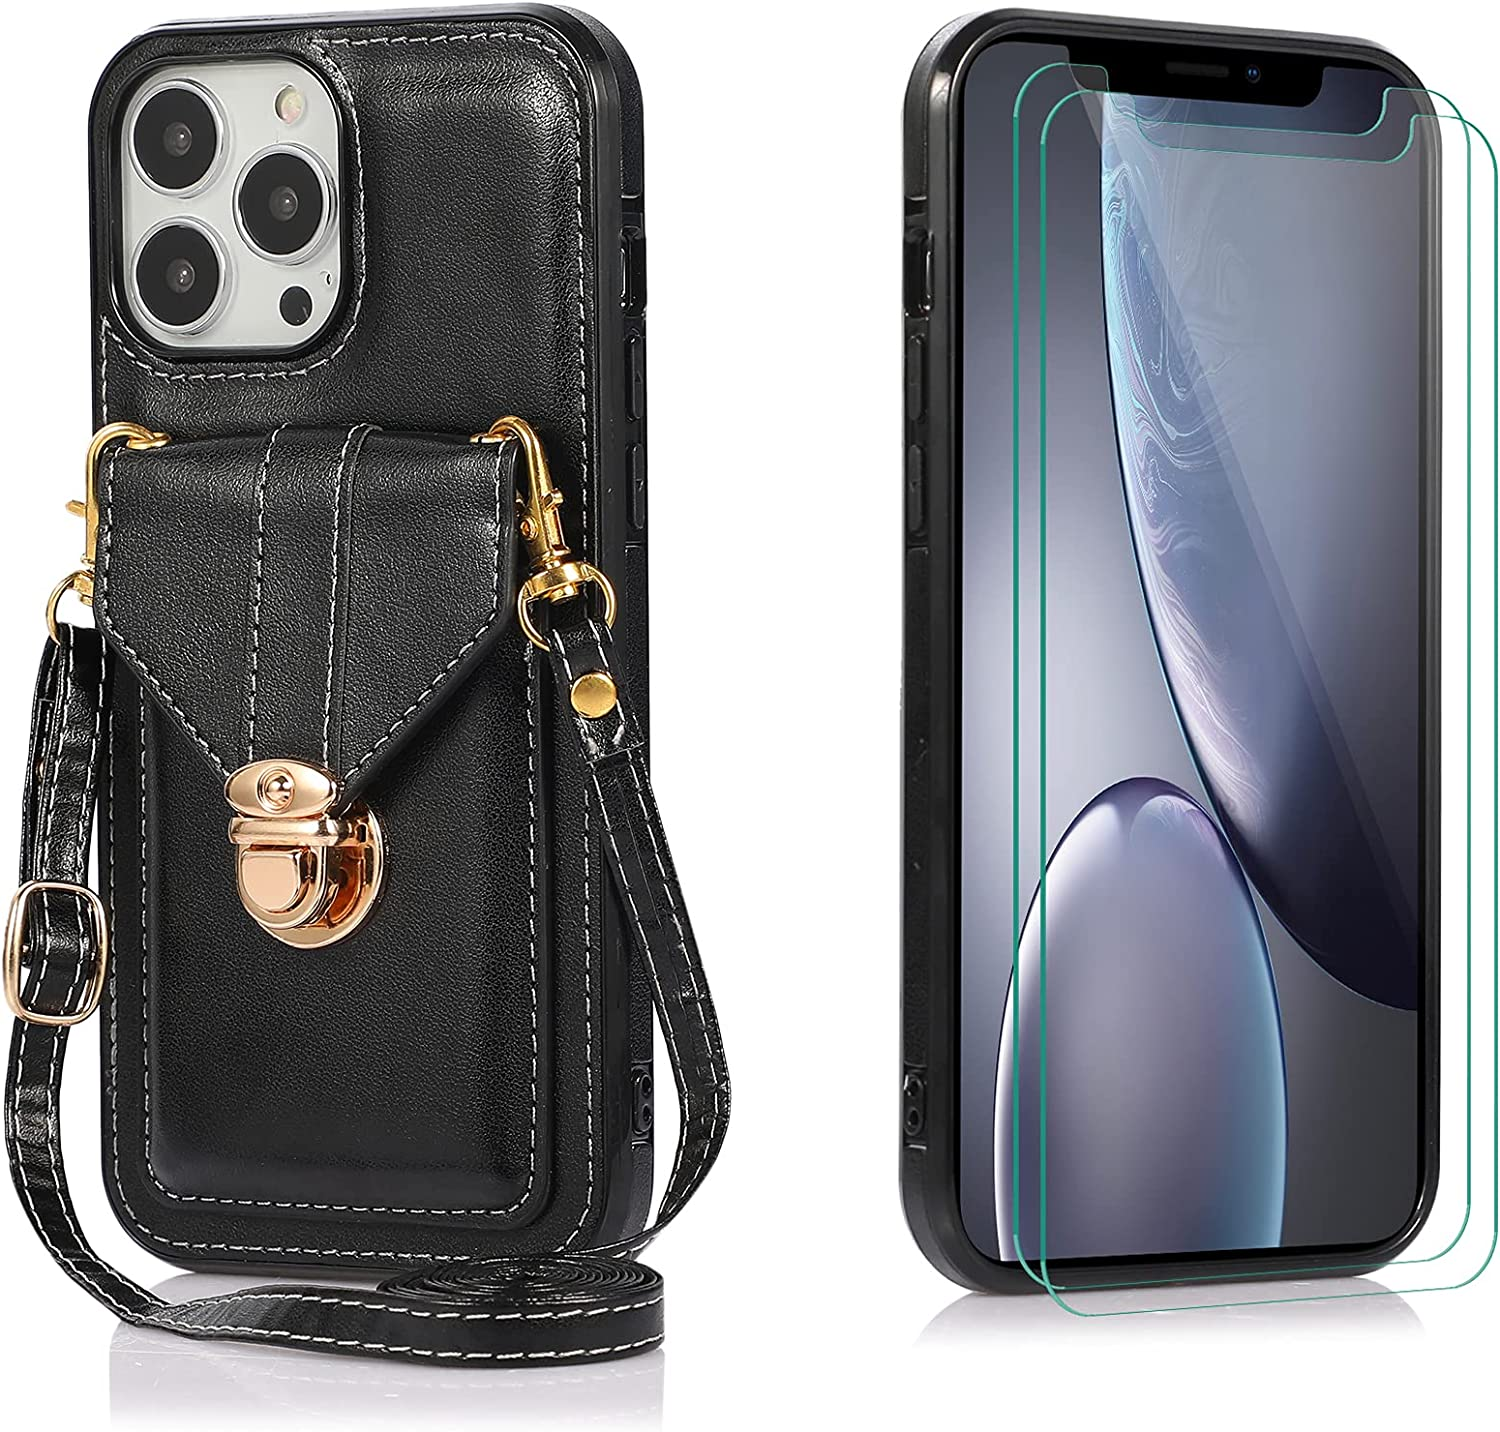 Futanwei Crossbody Slim Wallet Cases Compatible for iPhone 13 Pro Case with [2 Pack] Tempered Glass Screen Protector, Luxury Women's Card Holder Case with Crossbody Strap Lanyard, Black